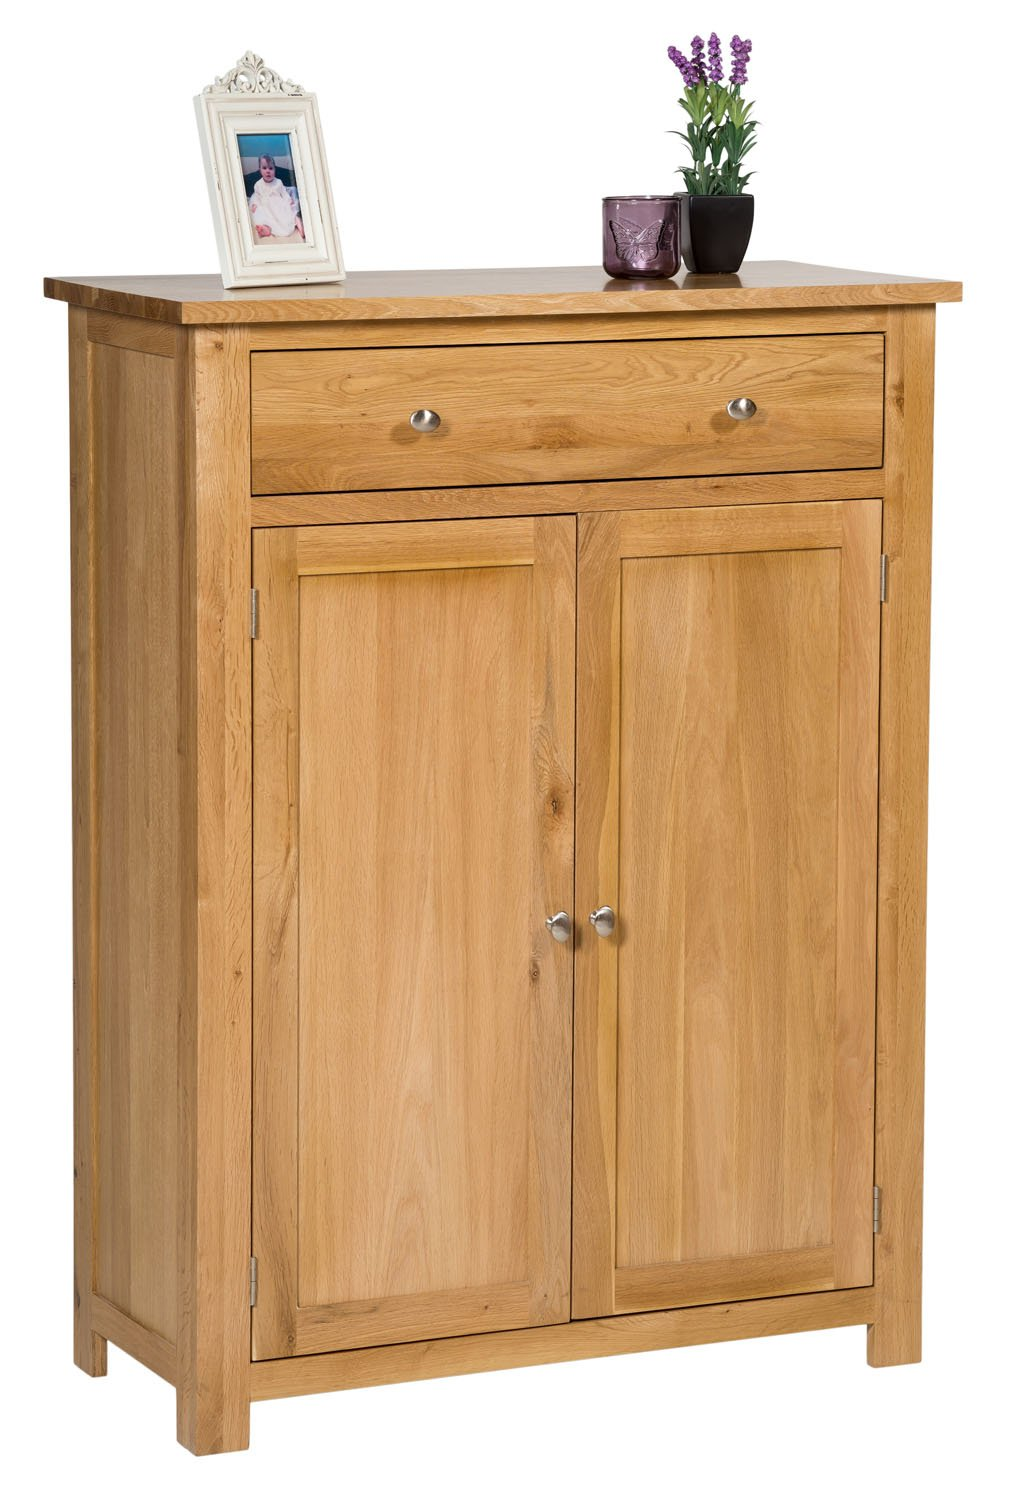 Tall Shoe Cupboard Uk Part - 35: Waverly Oak Tall Shoes Storage Cabinet In Light Oak Finish | Solid Wooden  Cupboard / Organiser With Drawer: Amazon.co.uk: Kitchen U0026 Home